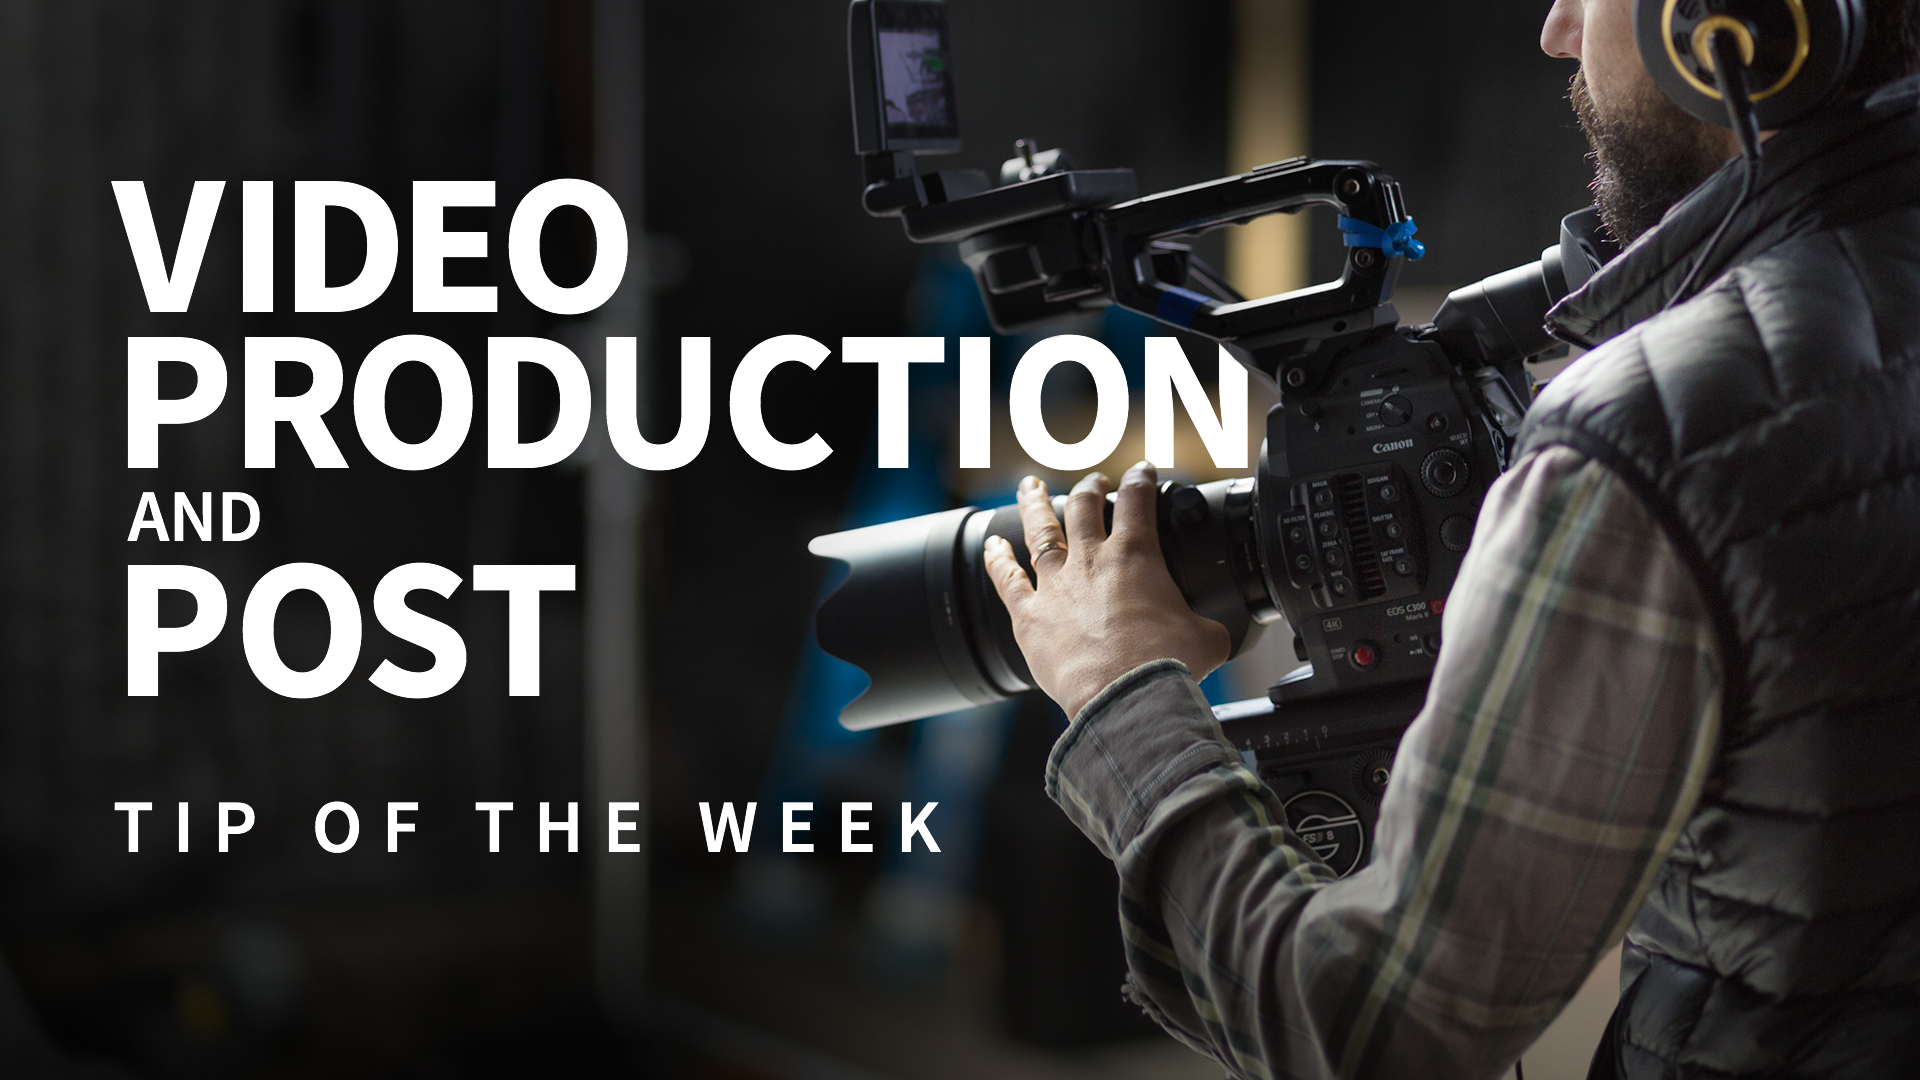 The challenges of recording audio: Video Production and Post Tip of the Week